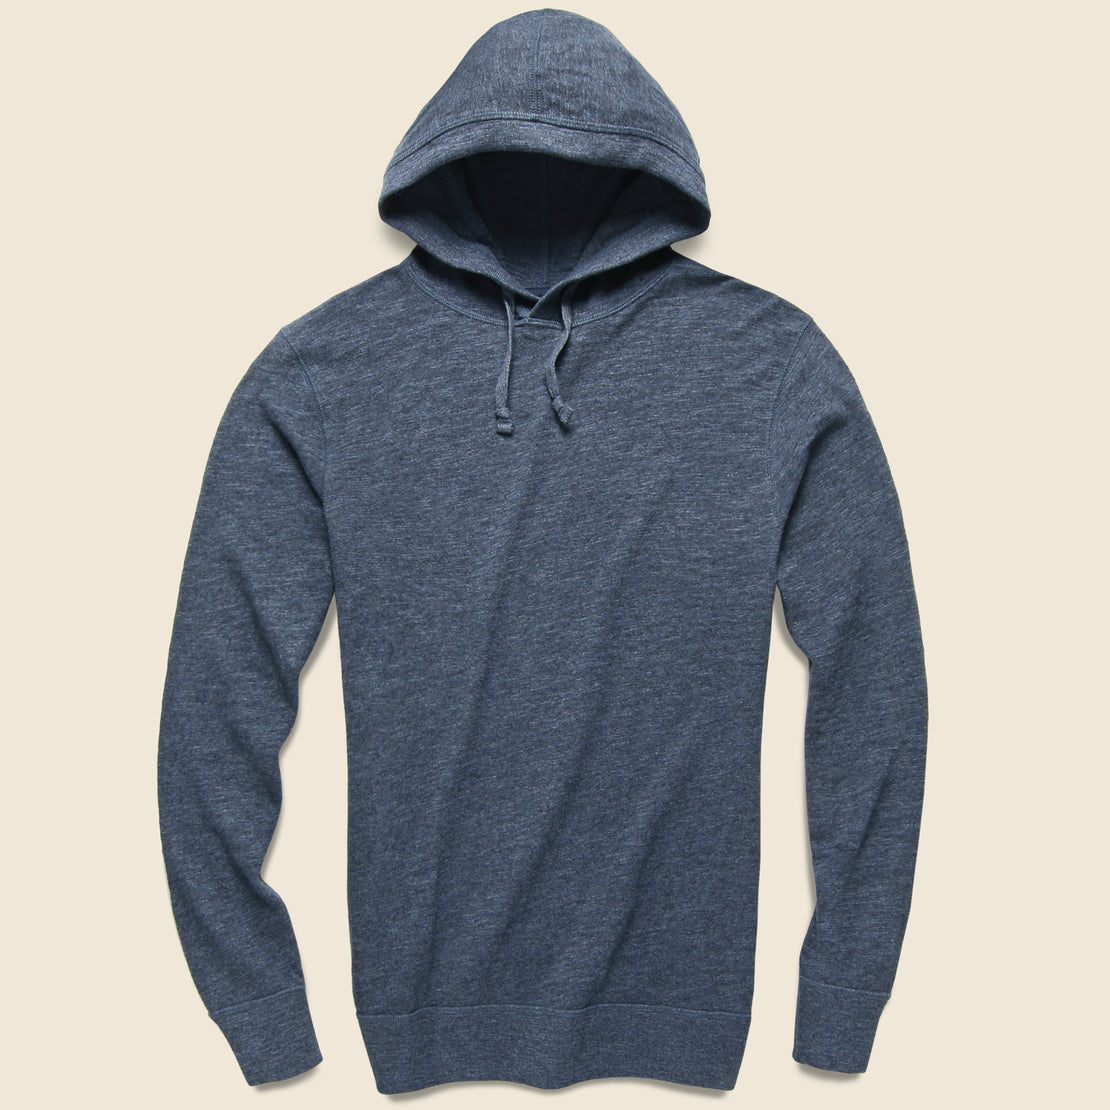 Faherty Slub Cotton Hoodie - Navy Heather